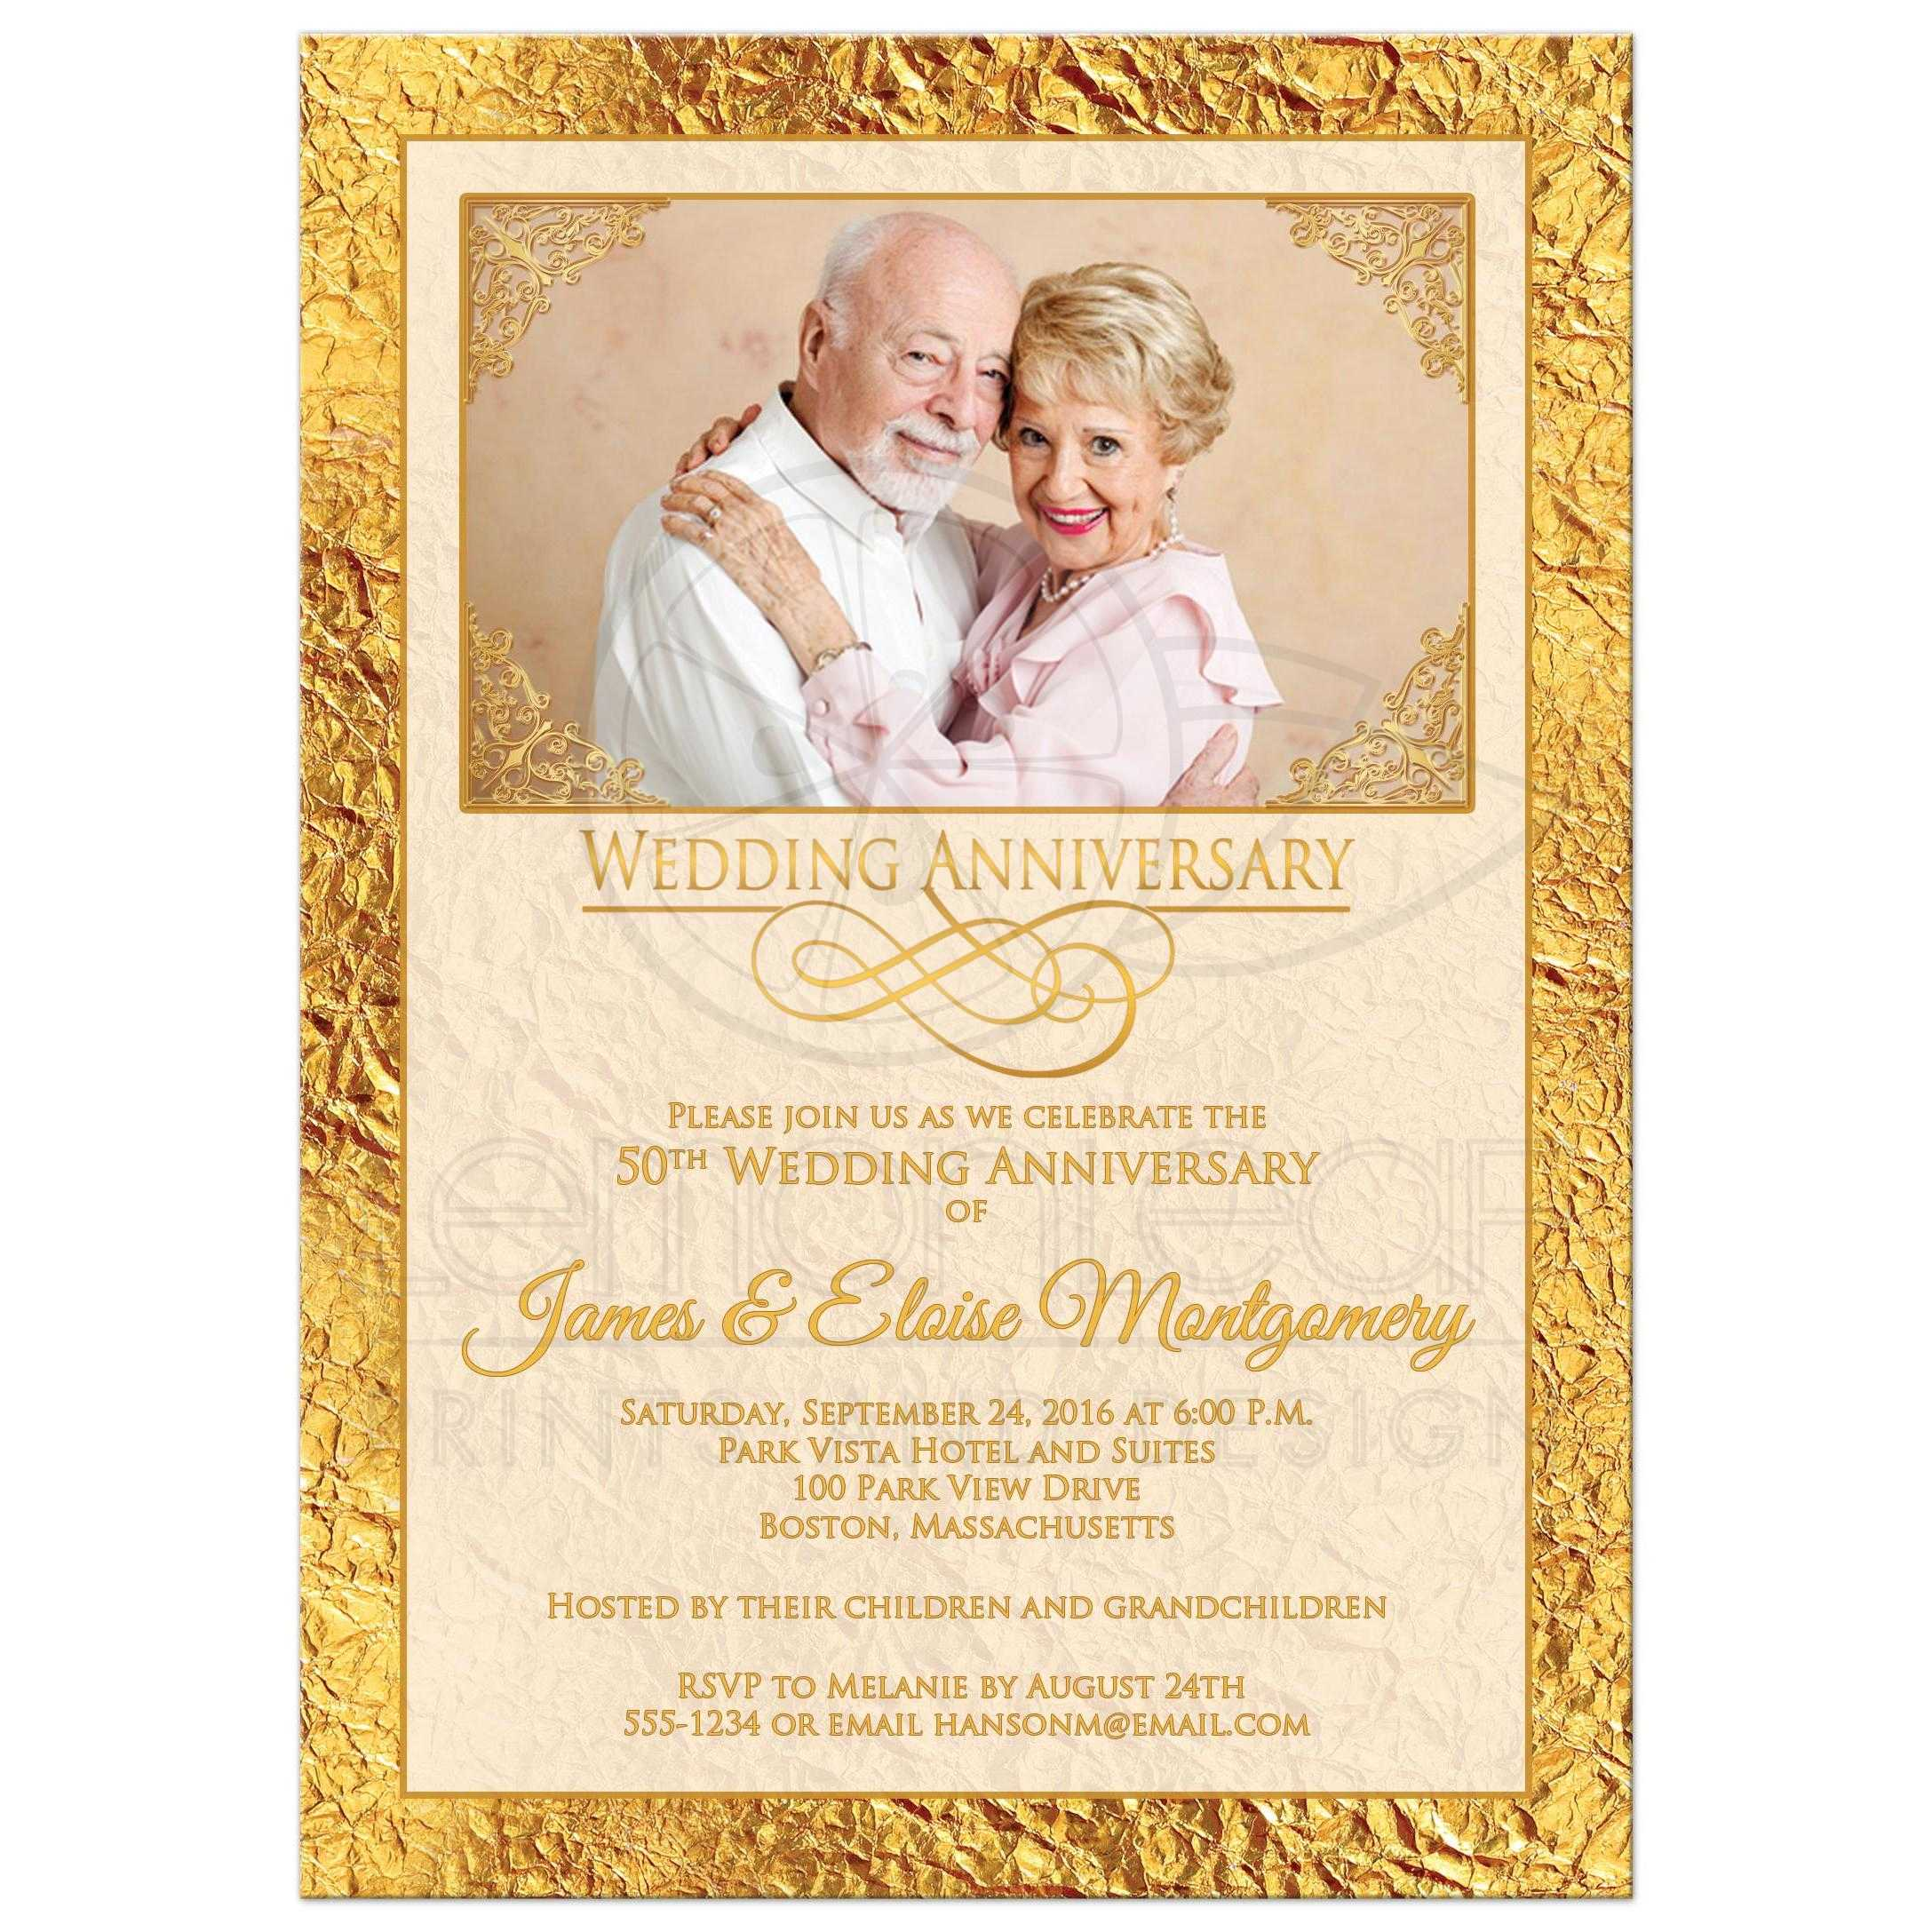 50th Wedding Anniversary Photo Invitation | Ivory, Gold Scrolls ...